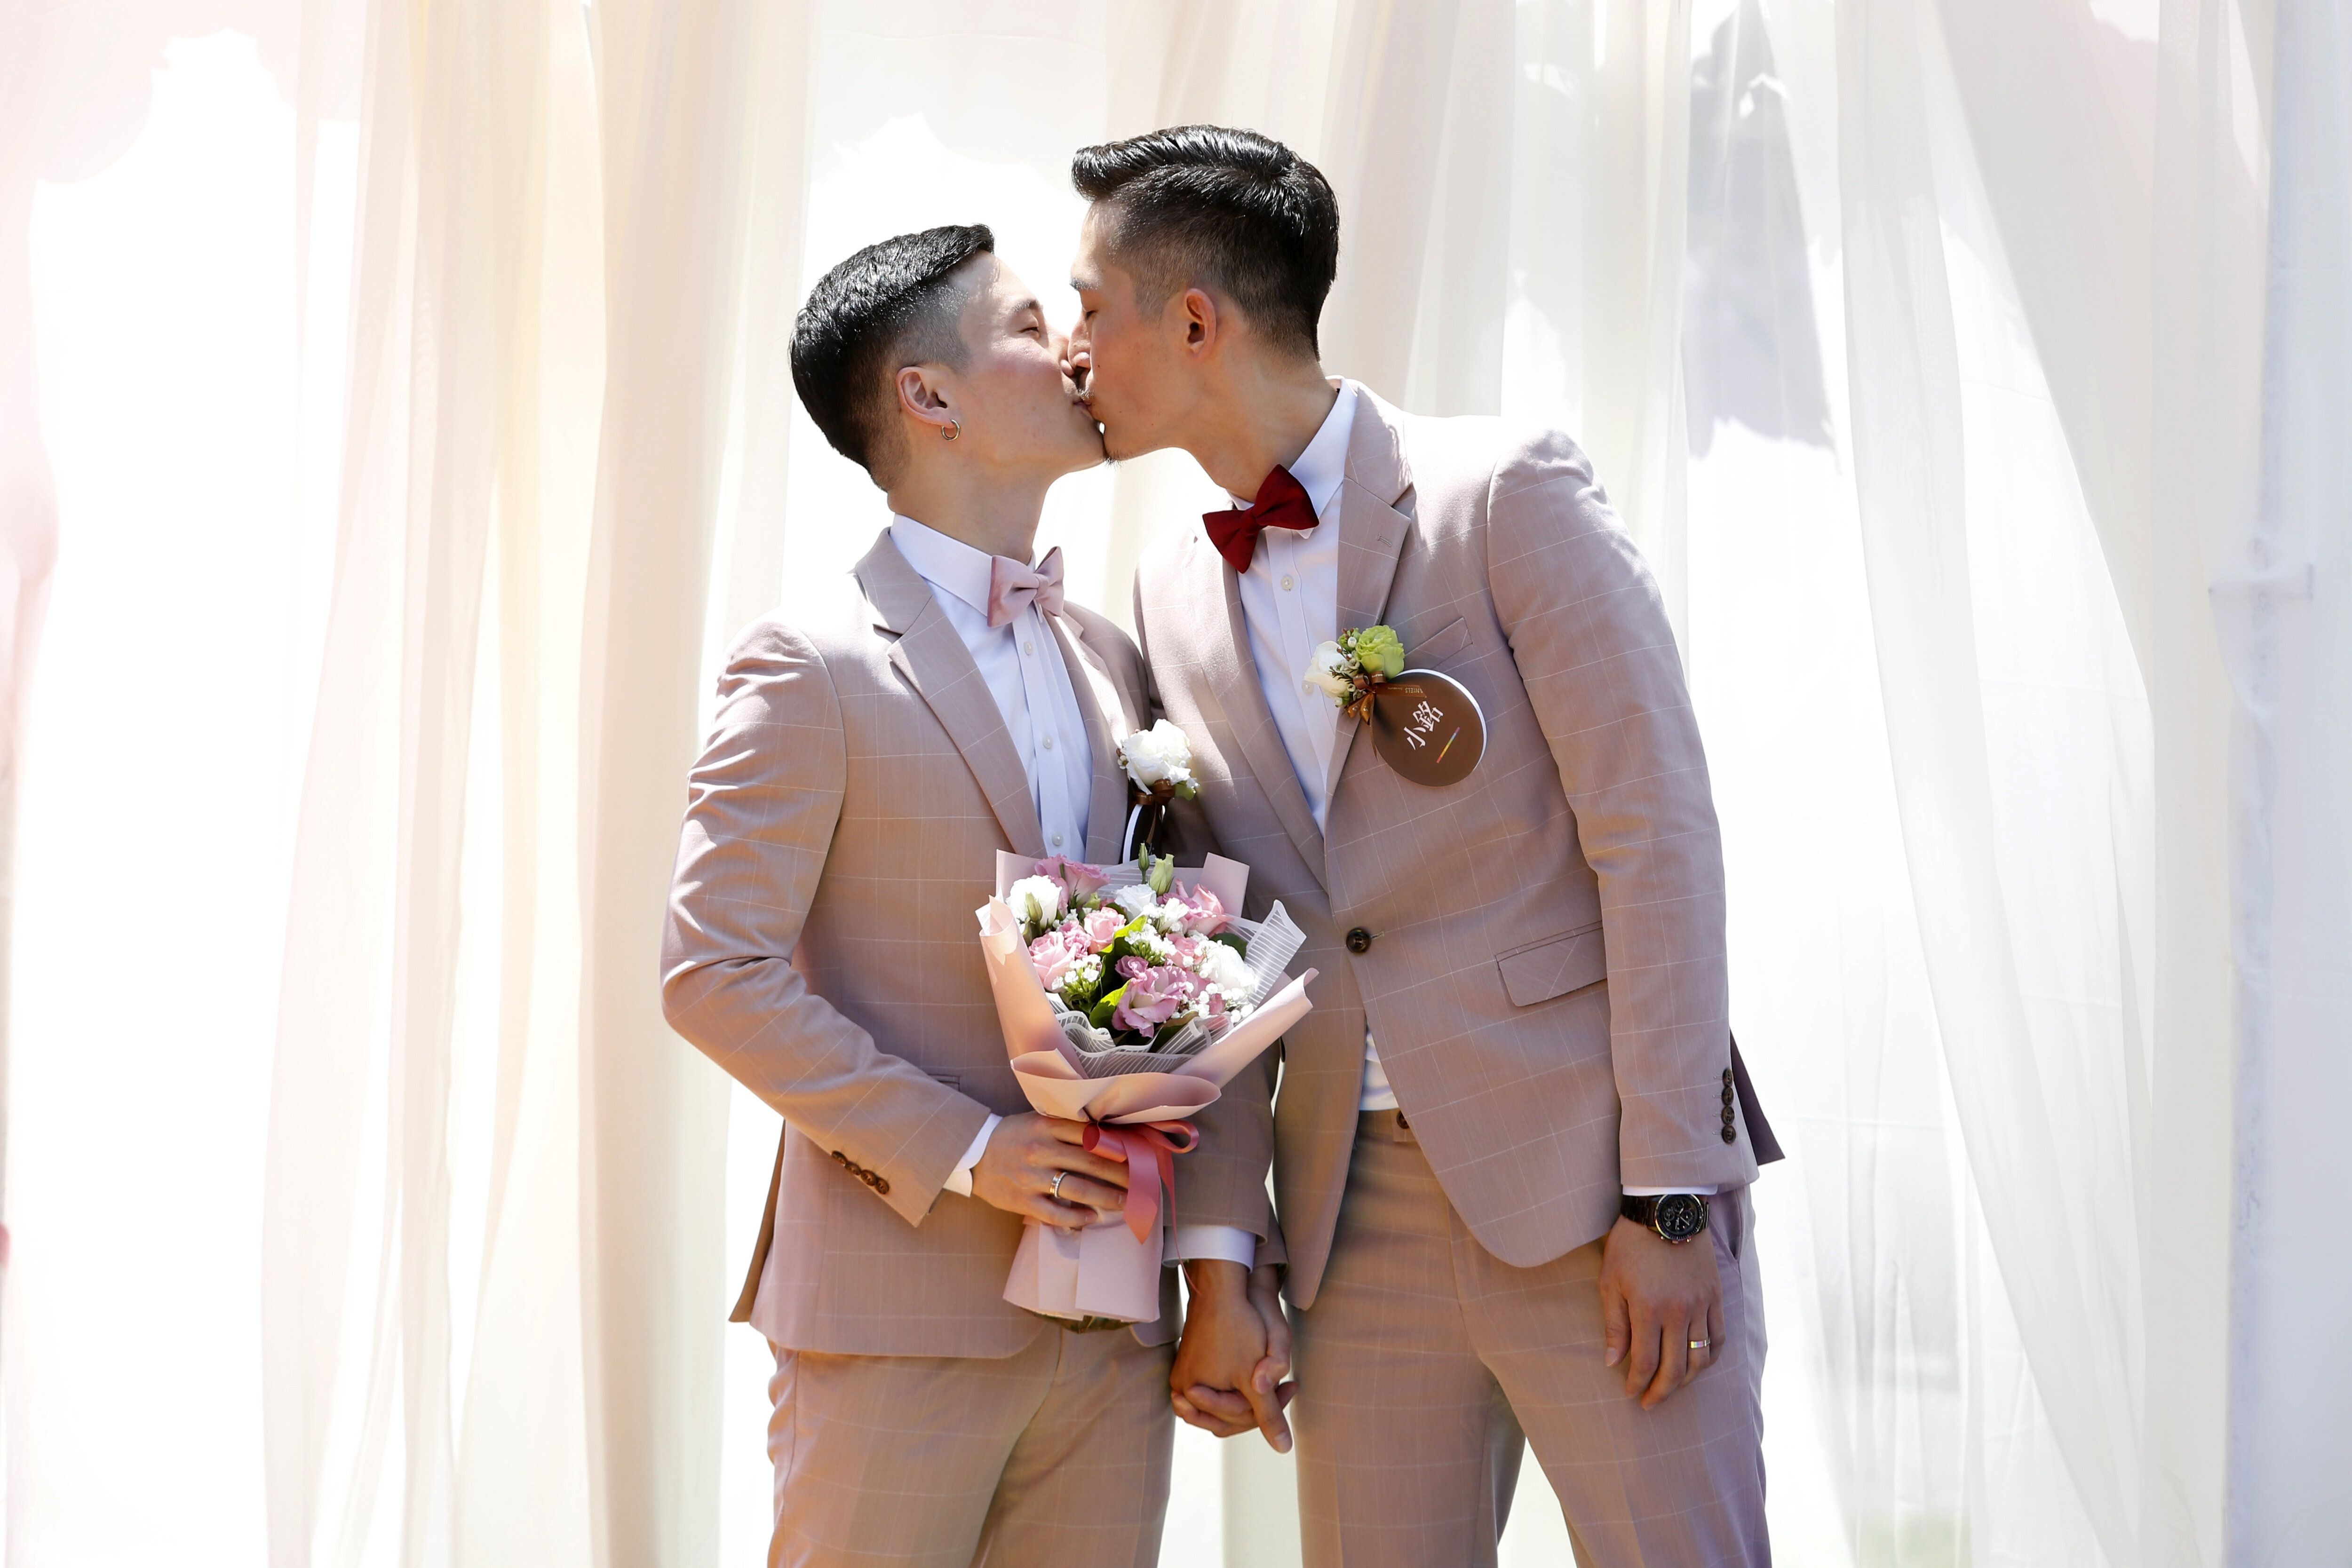 A married couple shares a kiss during a pro same-sex marriage party organized by the Taipei City government and Marriage Equality Coalition Taiwan in Taipei, Taiwan, on Friday, May 24, 2019. Same-sex couples in Taiwan celebrated as it held the first gay marriages anywhere in Asia on Friday. Photographer: Ashley Pon/Bloomberg via Getty Images